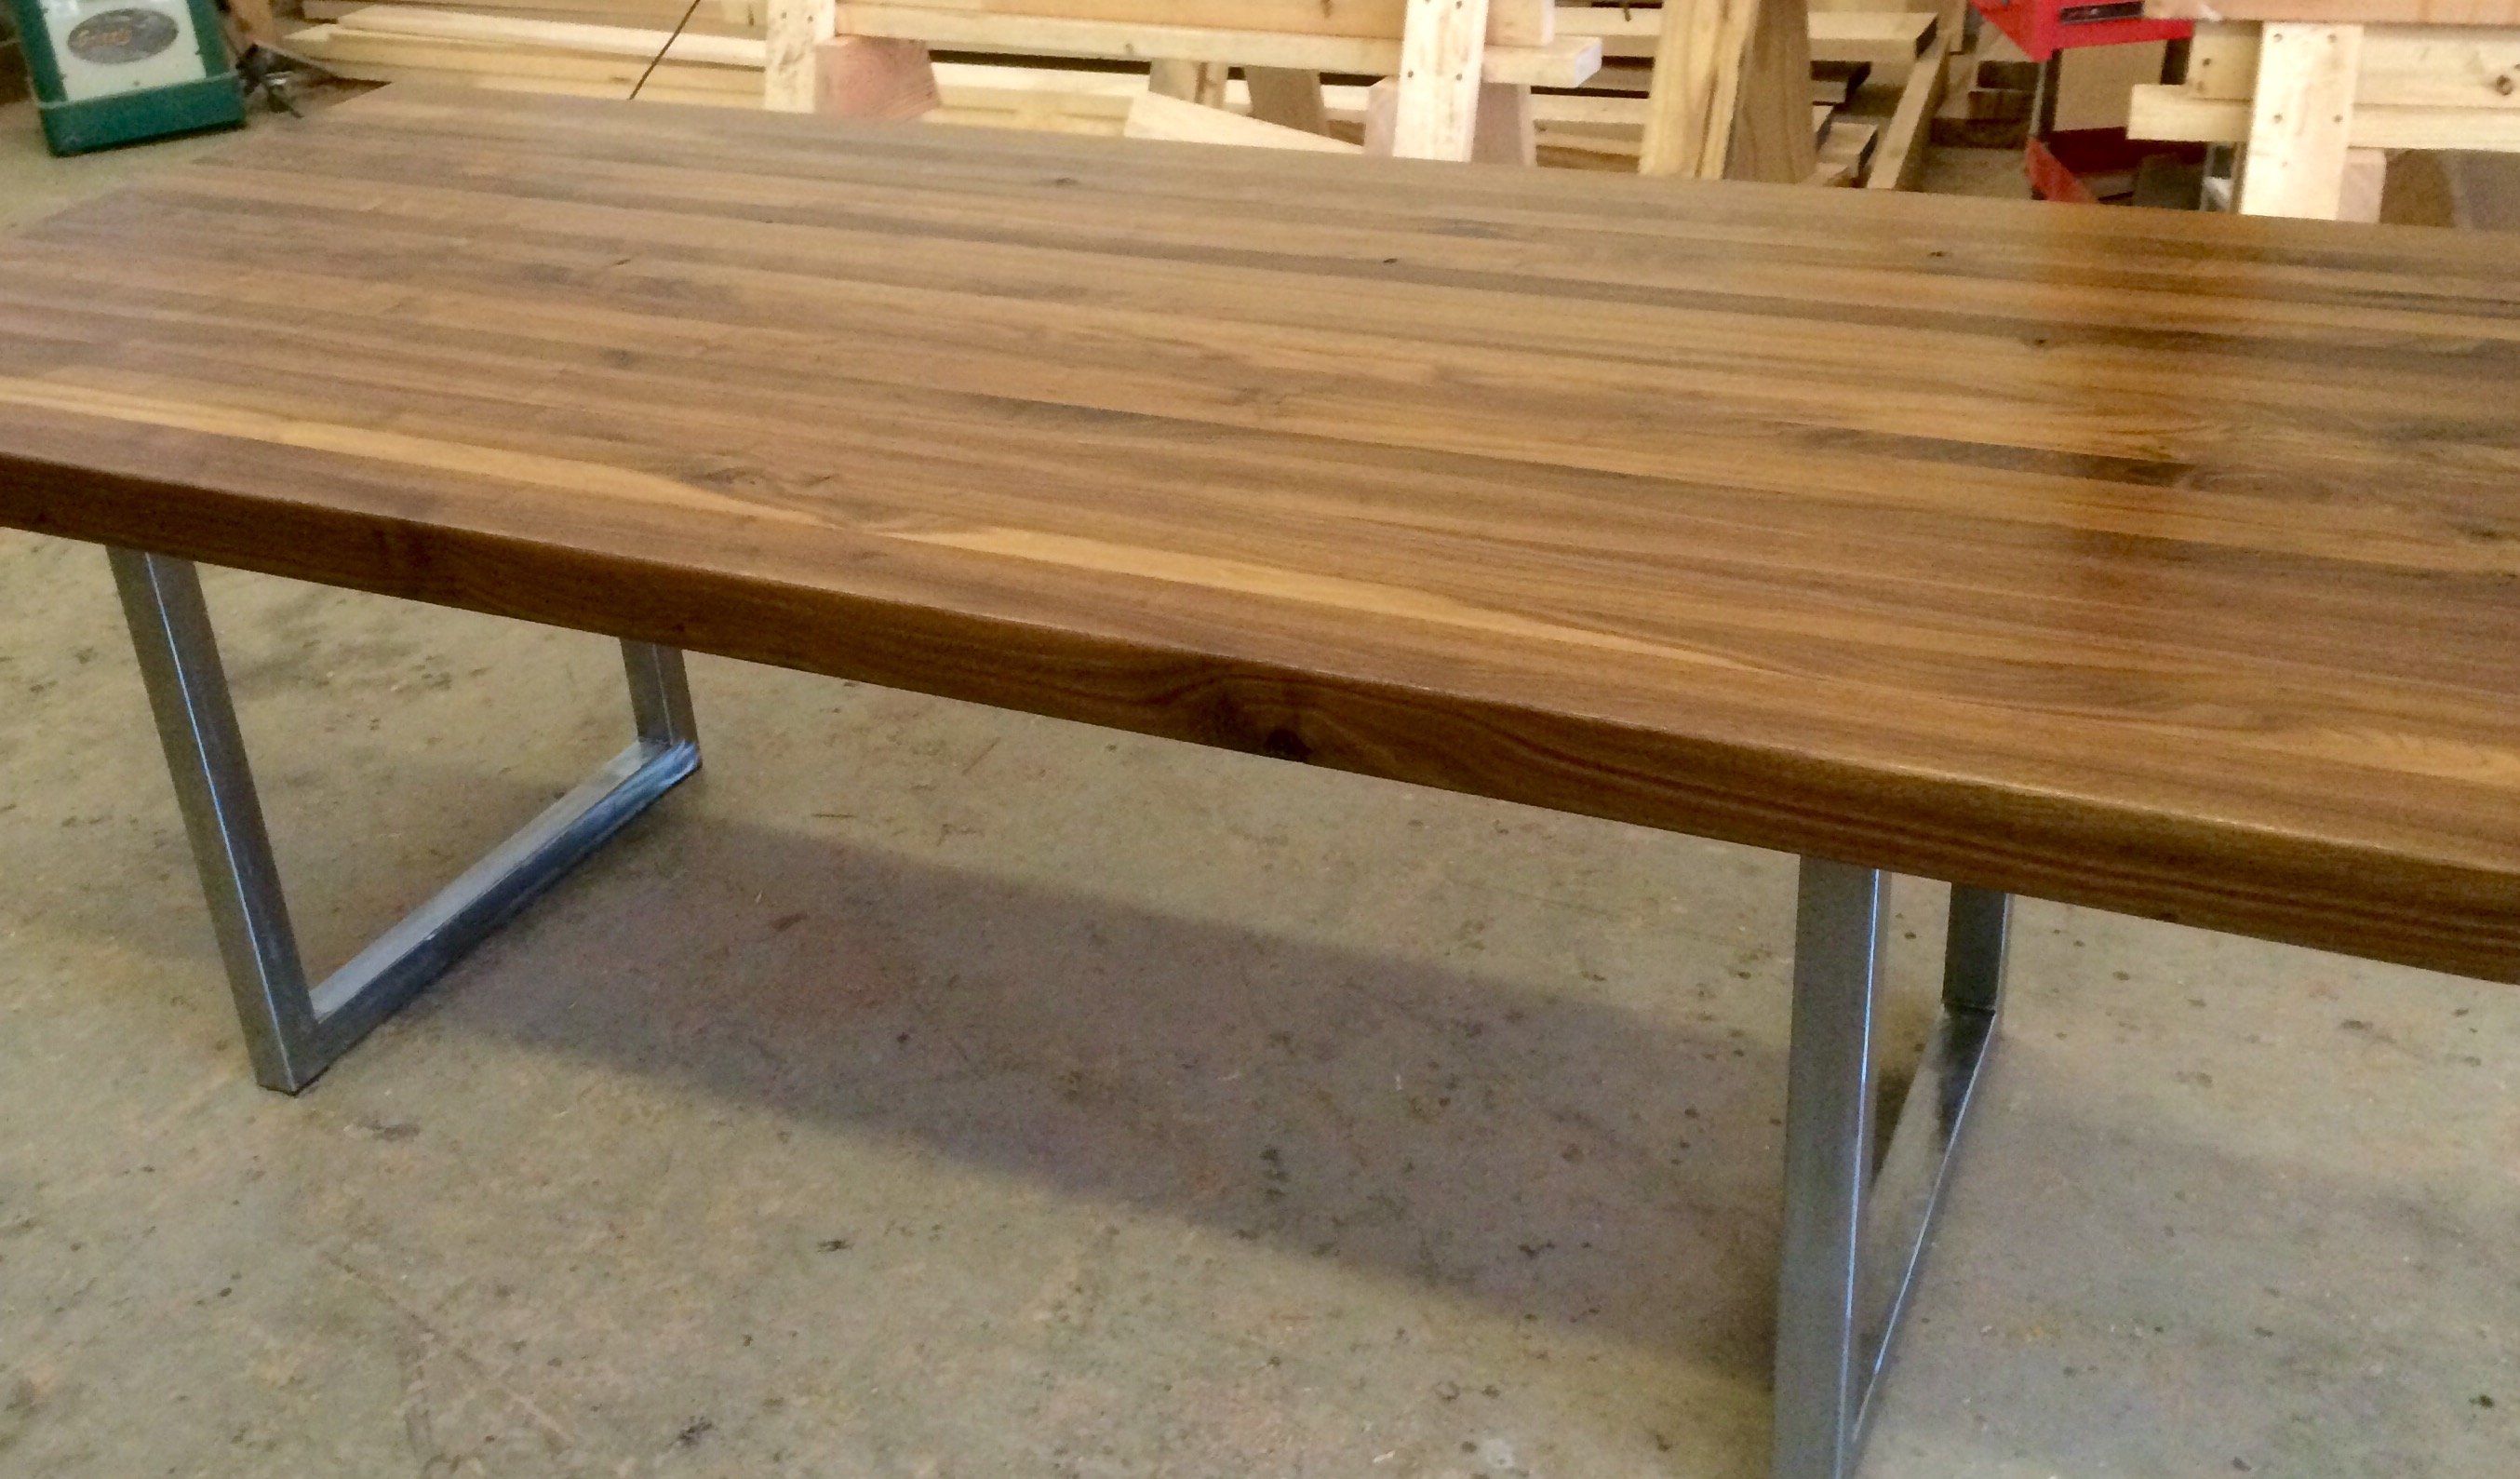 How to strip table